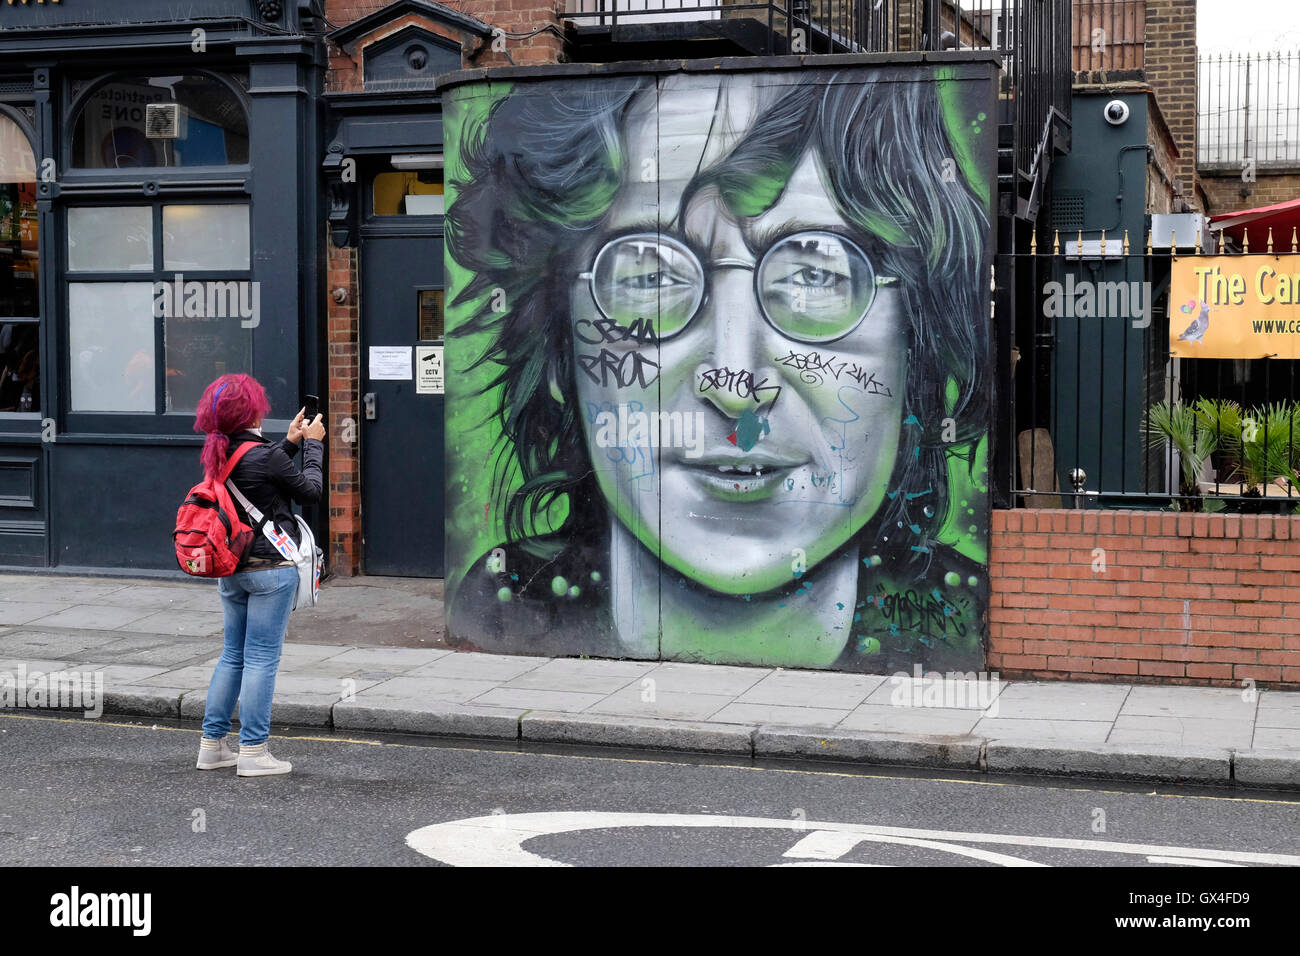 A woman with red hair photographs a portrait of John Lennon. - Stock Image